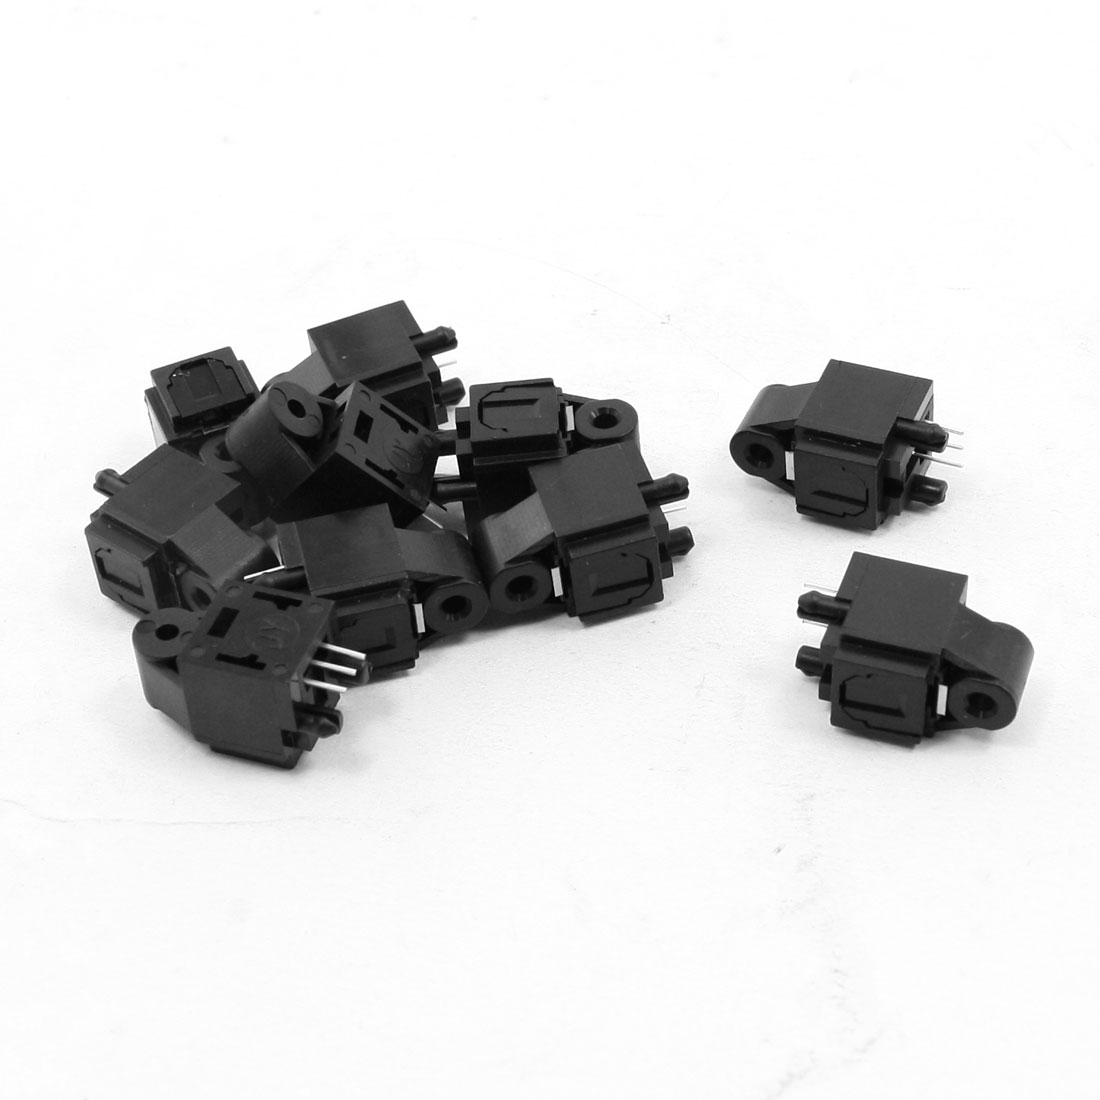 10 Pcs Optical Fibers Jack Sockets 23mmx14mmx12mm for A/V Audio Video